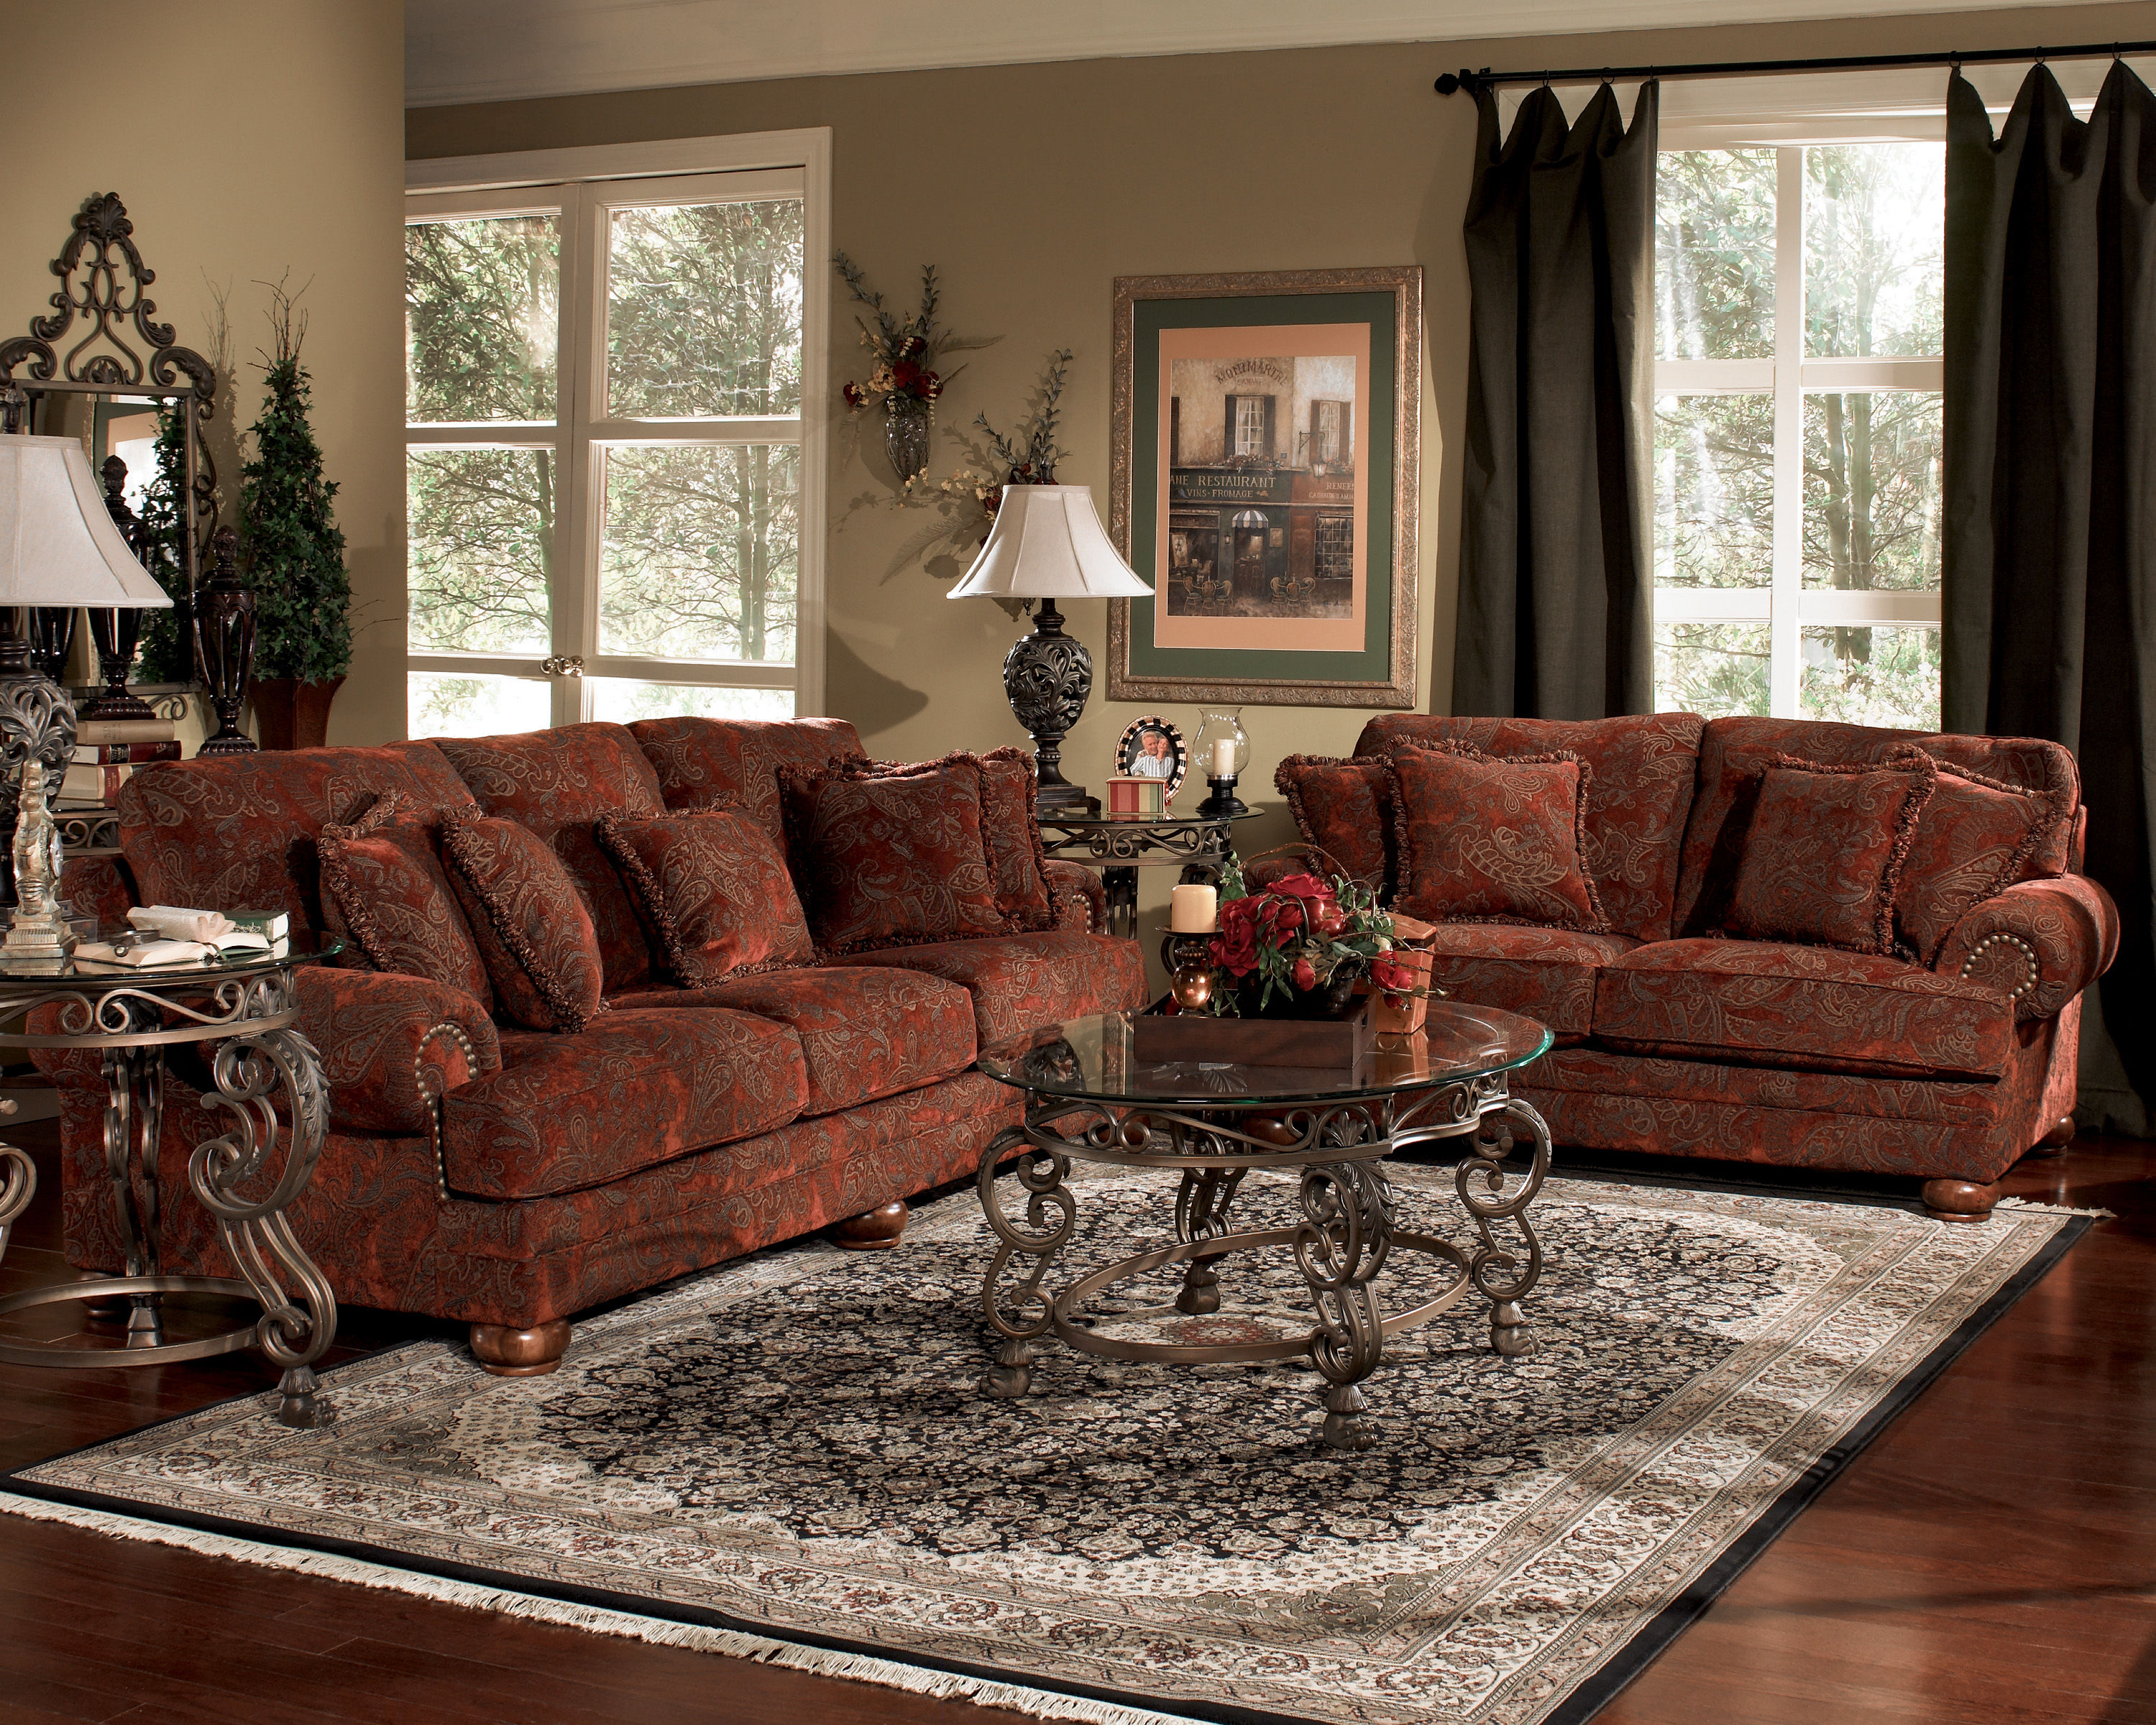 Excellent Burlington Sienna 4 Pc Living Room Set The Classy Home Gmtry Best Dining Table And Chair Ideas Images Gmtryco